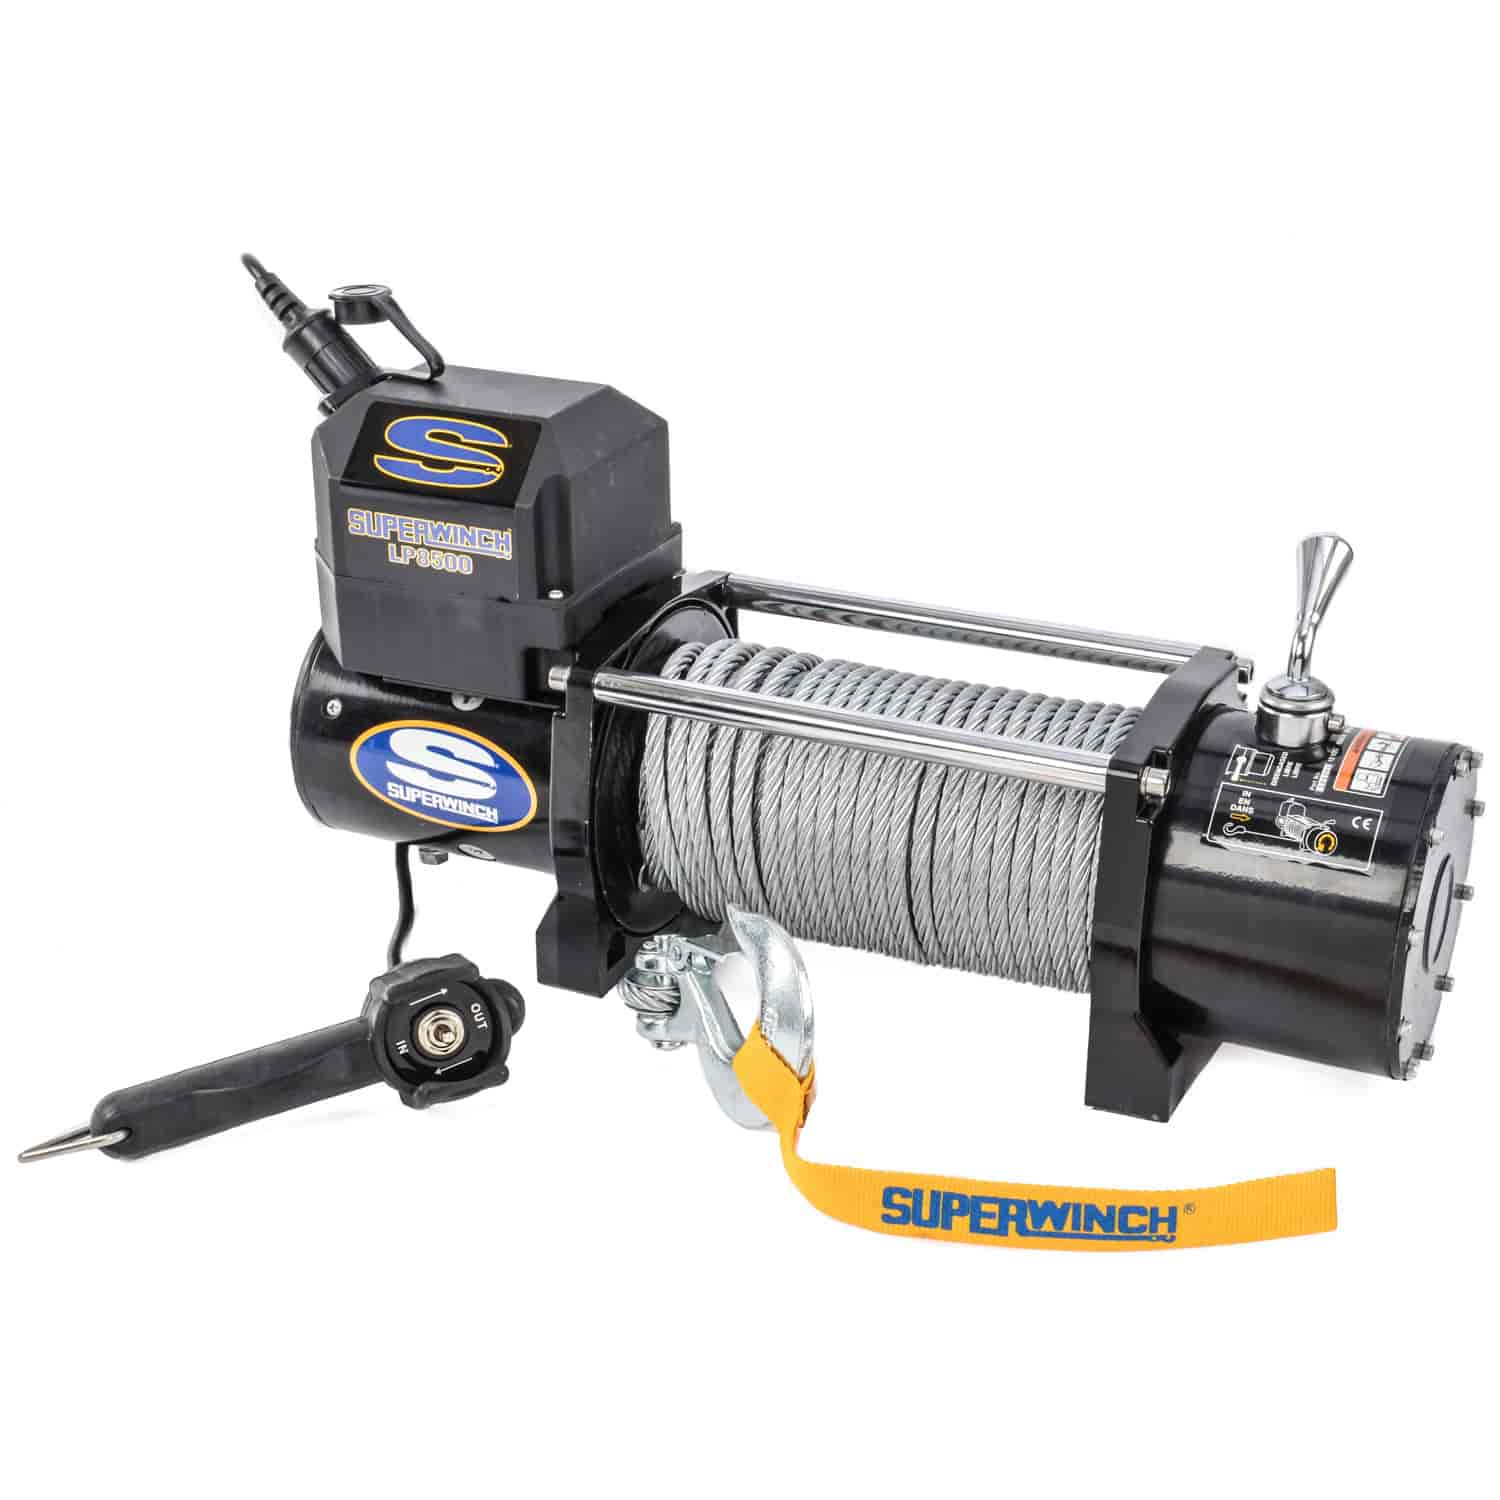 846 1585202 superwinch 1585202 lp8500 winch rated line pull 8,500 lbs jegs superwinch lp8500 wiring diagram at fashall.co